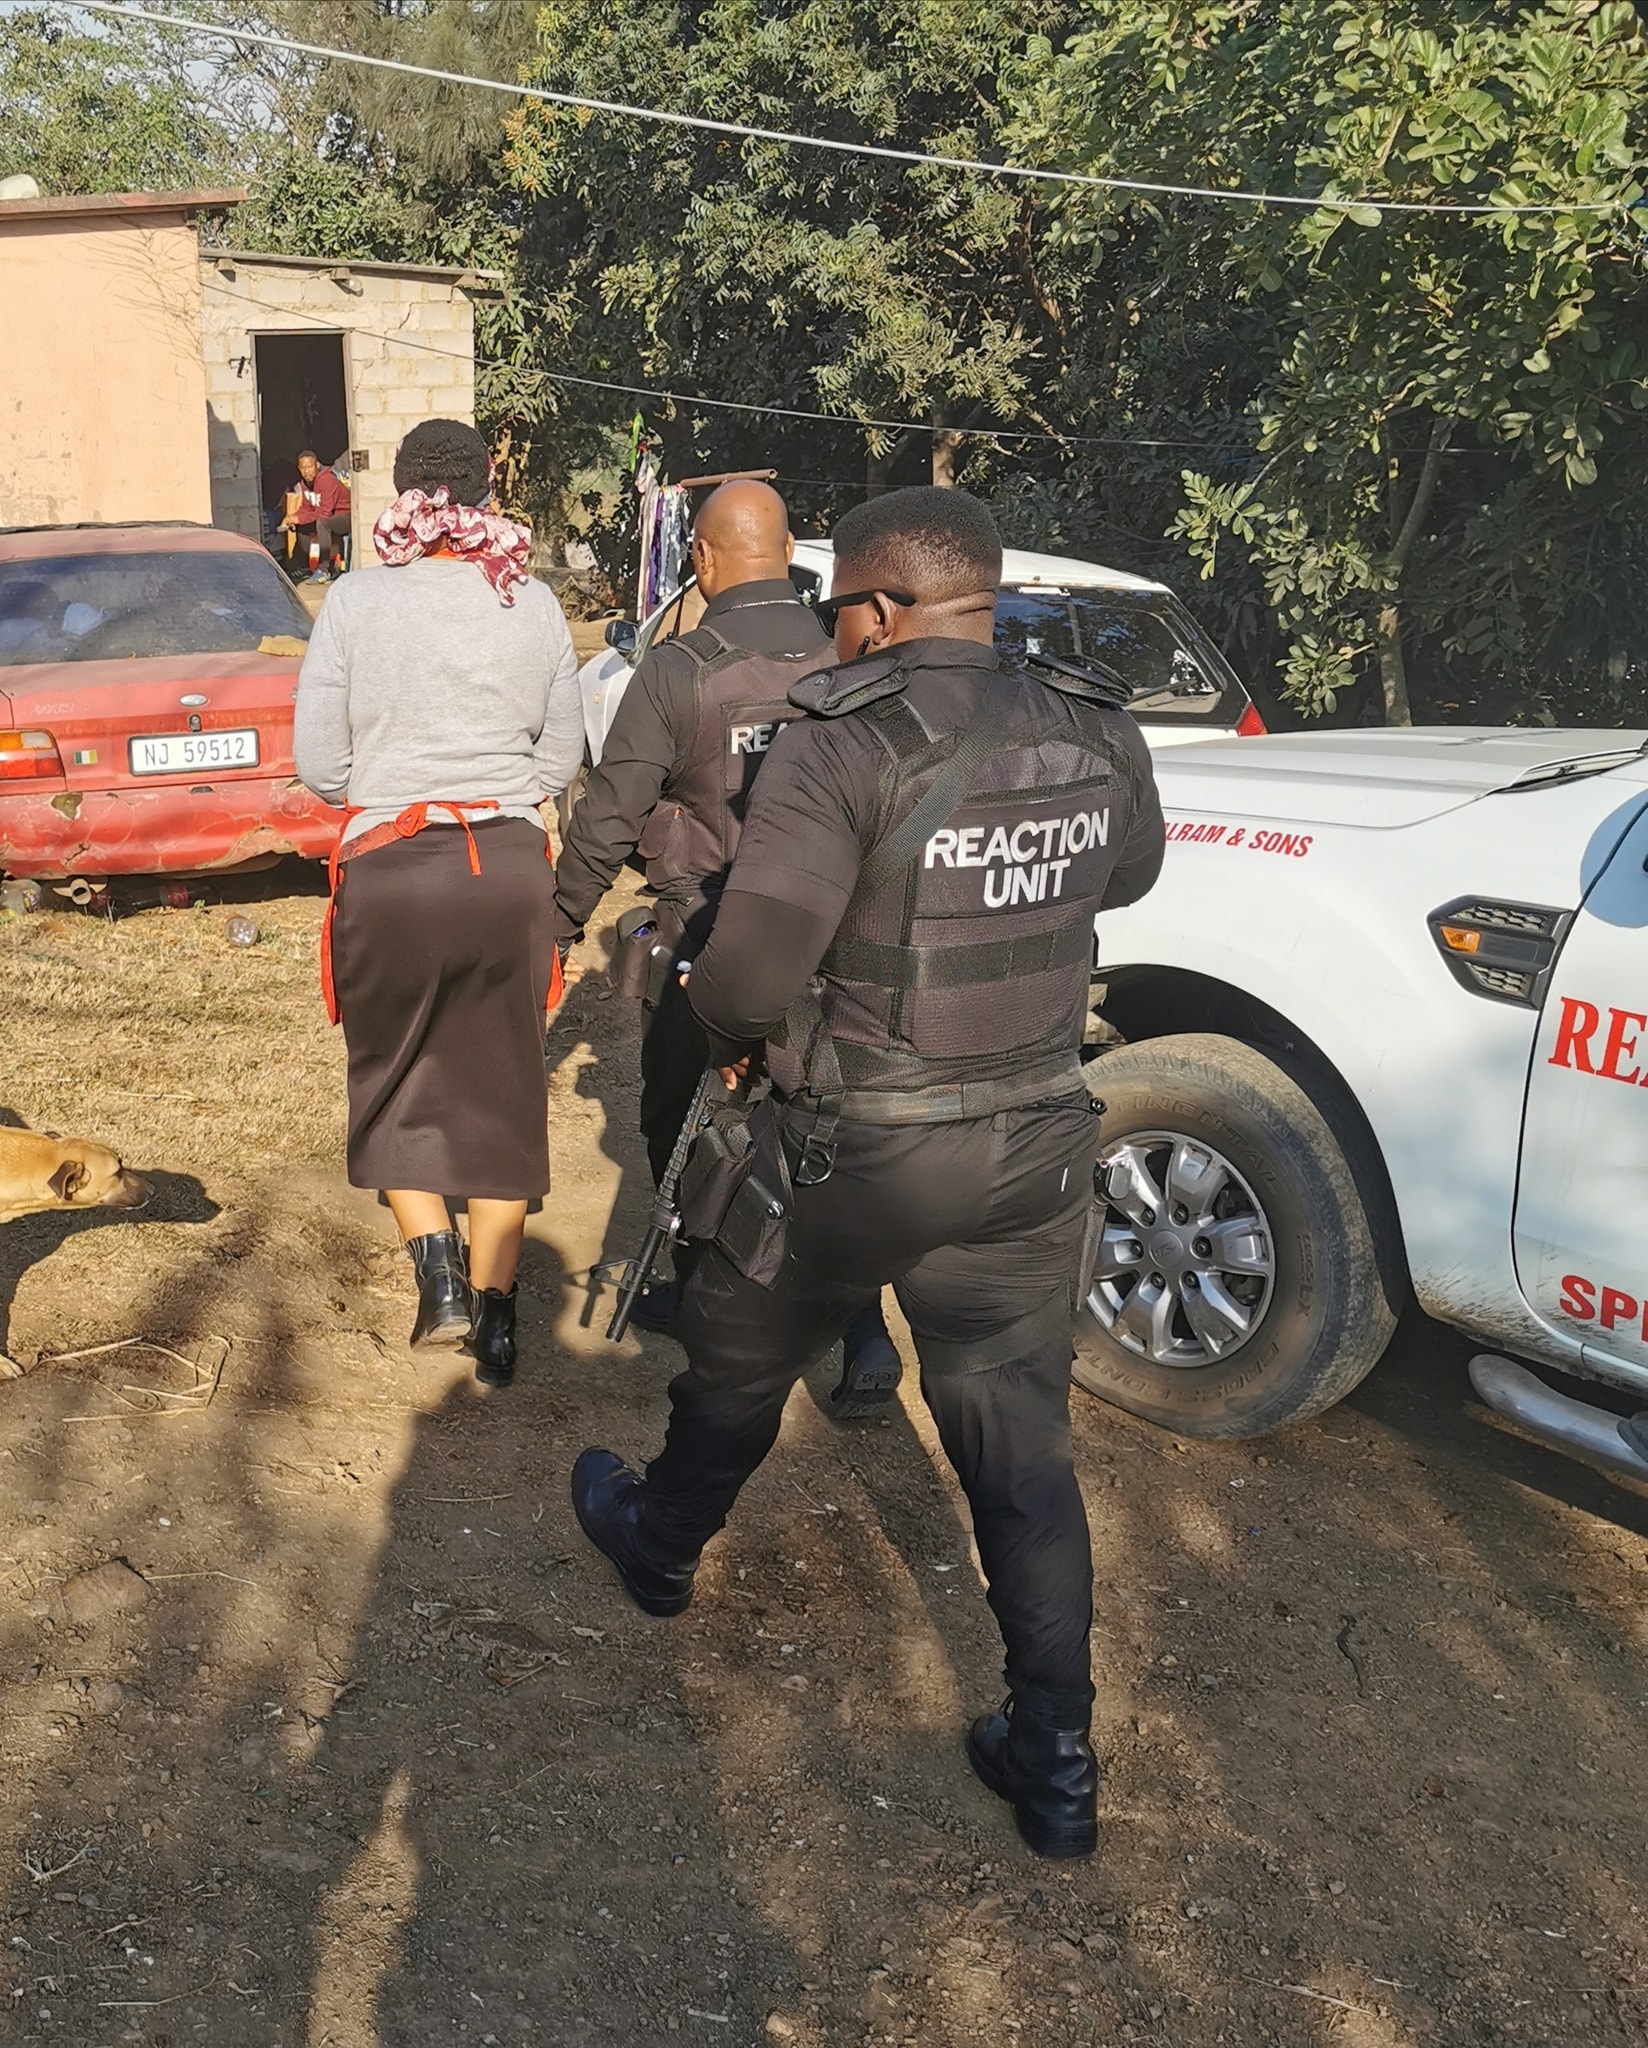 Domestic worker arrested for theft valued R300 000 in Mt. Edgecombe